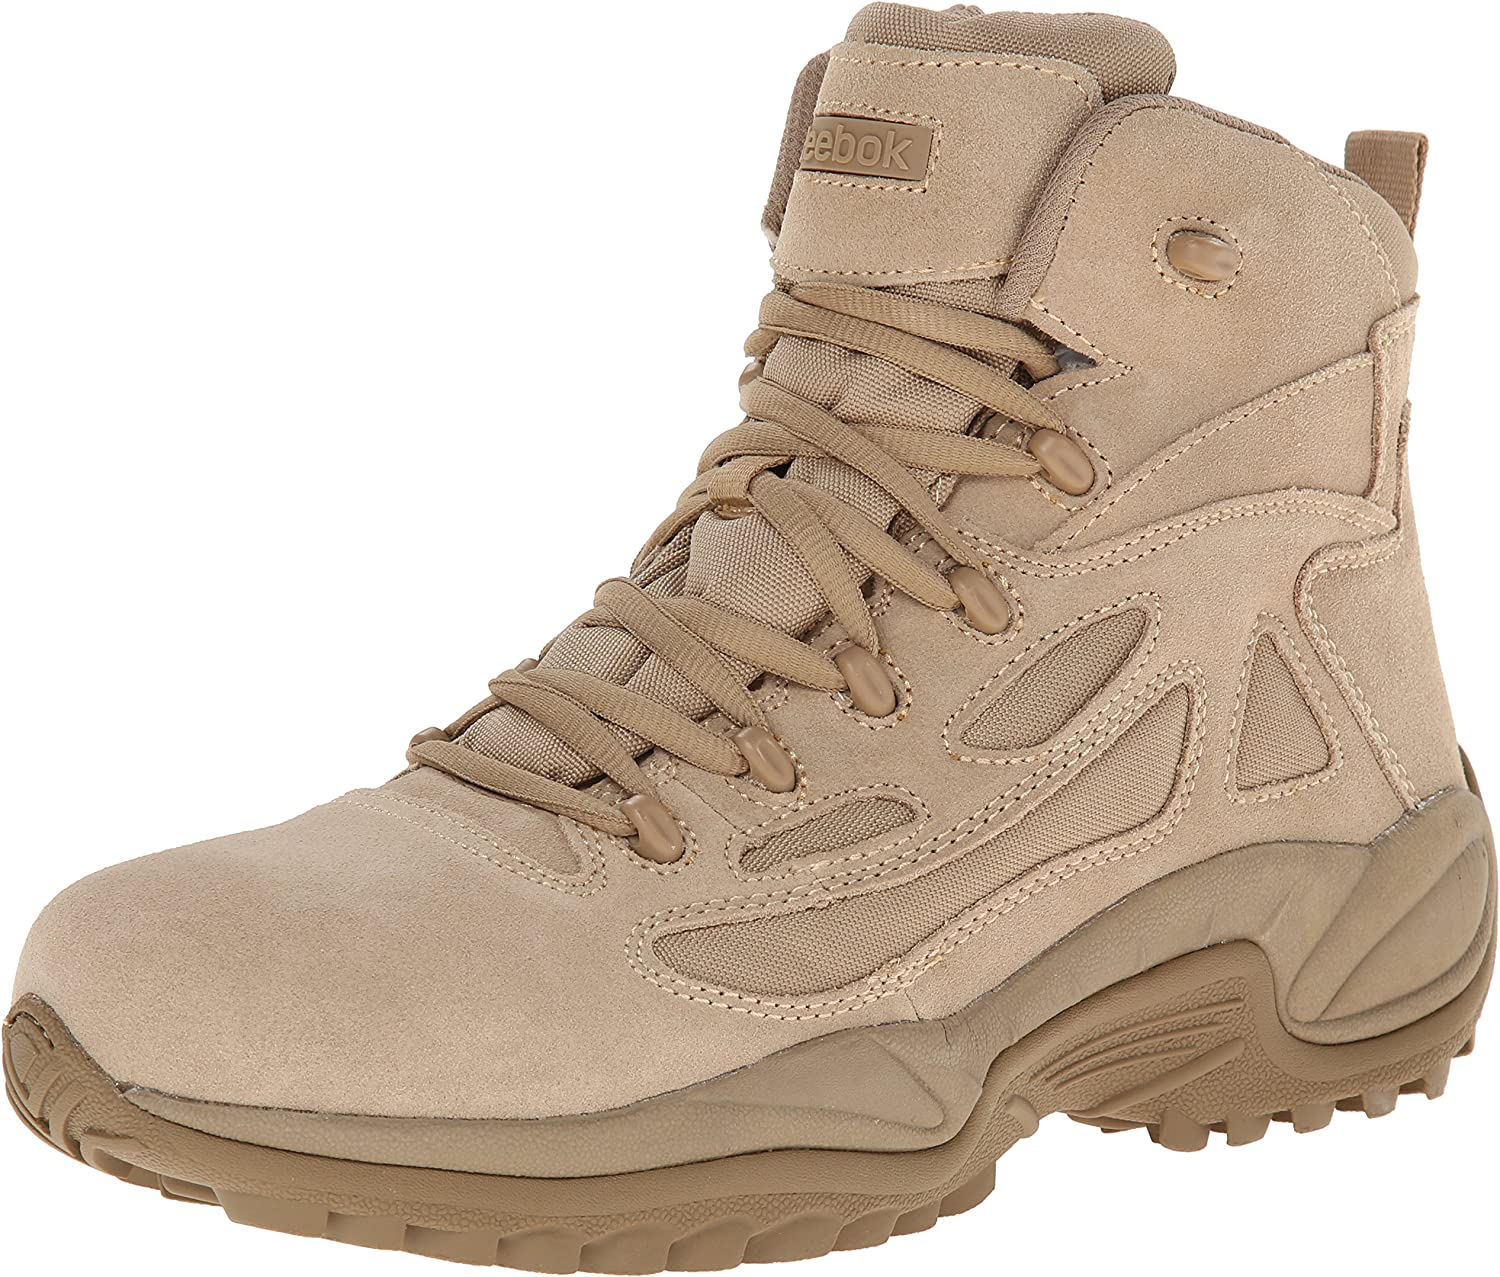 """Reebok Work Duty Men's Rapid Response RB RB8695 6"""" Tactical Boot: Shoes"""